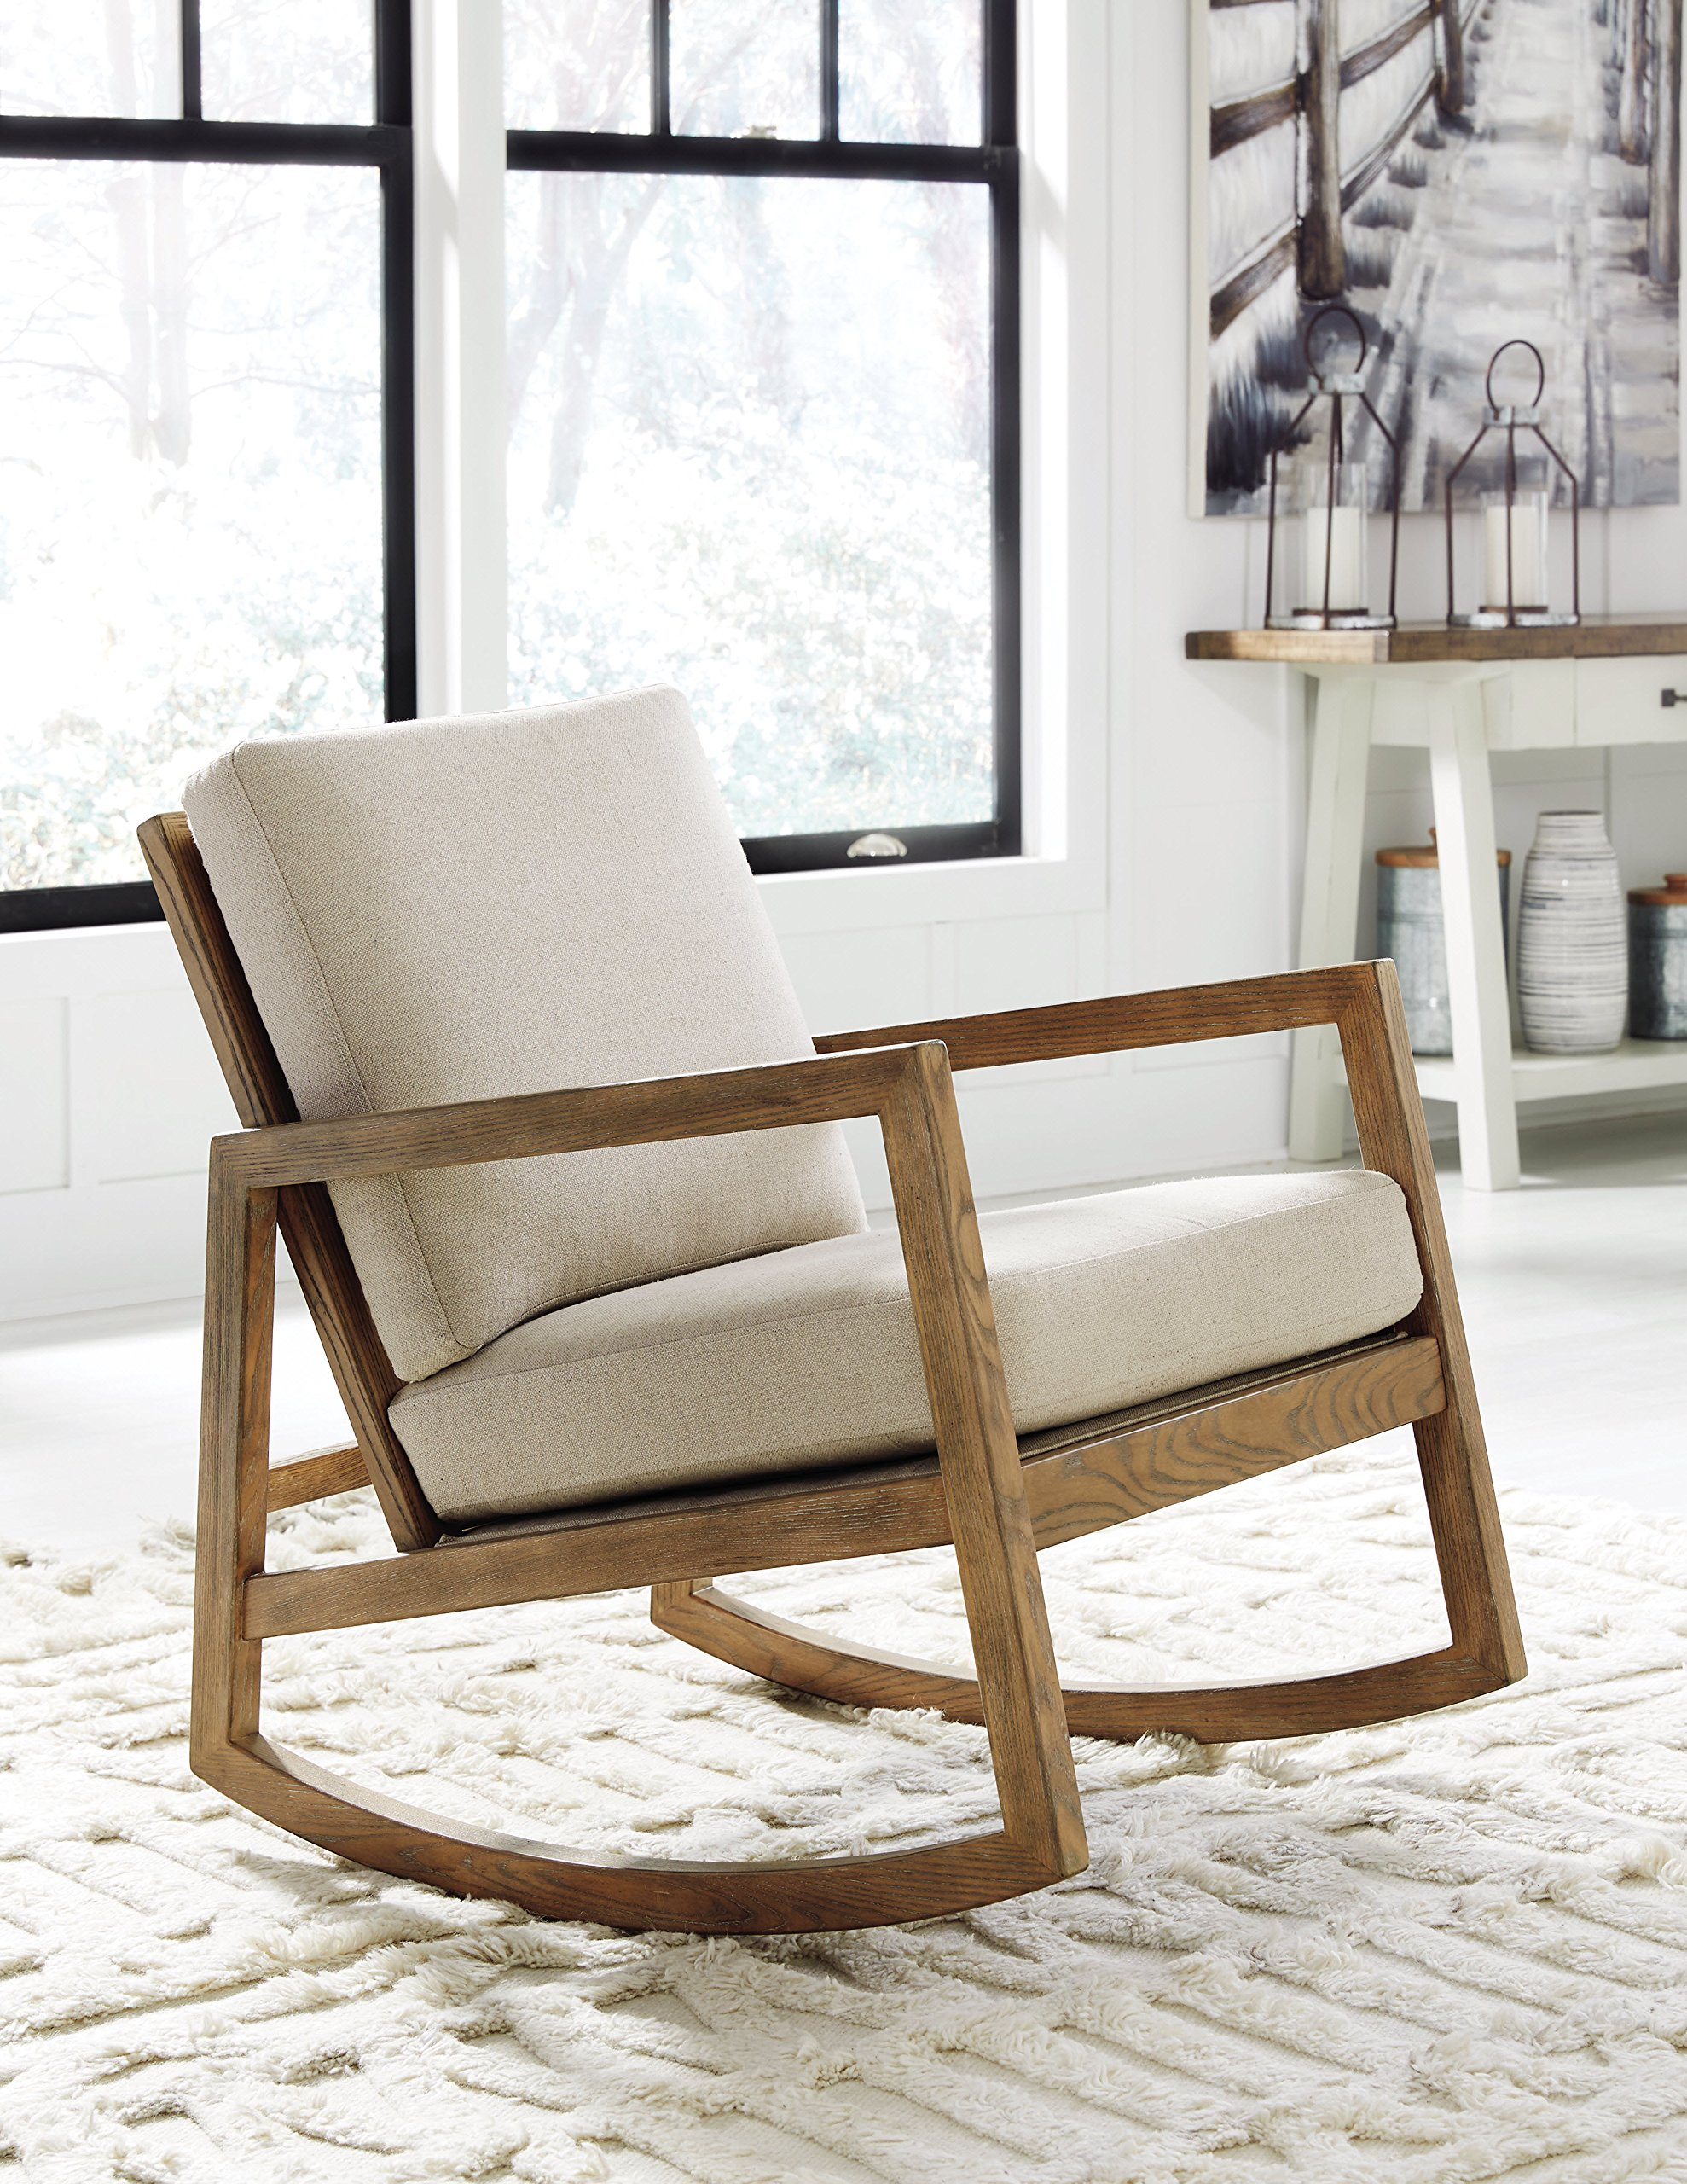 Ashley Furniture Signature Design - Novelda Rocking Accent Chair - Neutral Tan - Faux Wood Finish - LIVING ROOM ROCKING CHAIR: This accent chair touts sleek lines, but with subtle country-chic style. Warm, neutral hues play up the charm, while the plush cushions indulge you in modern comfort DEEP CUSHIONED COMFORT: Sit back and relax on high-resiliency foam cushions wrapped in a polyester/linen blend. Made complete with an exposed frame in a faux wood finish and squared armrests NATURAL HUES: Embracing materials in their natural form, the neutral fabric and light wooden tone easily matches a range of decor styles-whether yours is mid century, or filled with farmhouse flair - living-room-furniture, living-room, accent-chairs - 91ypTPcA OL -